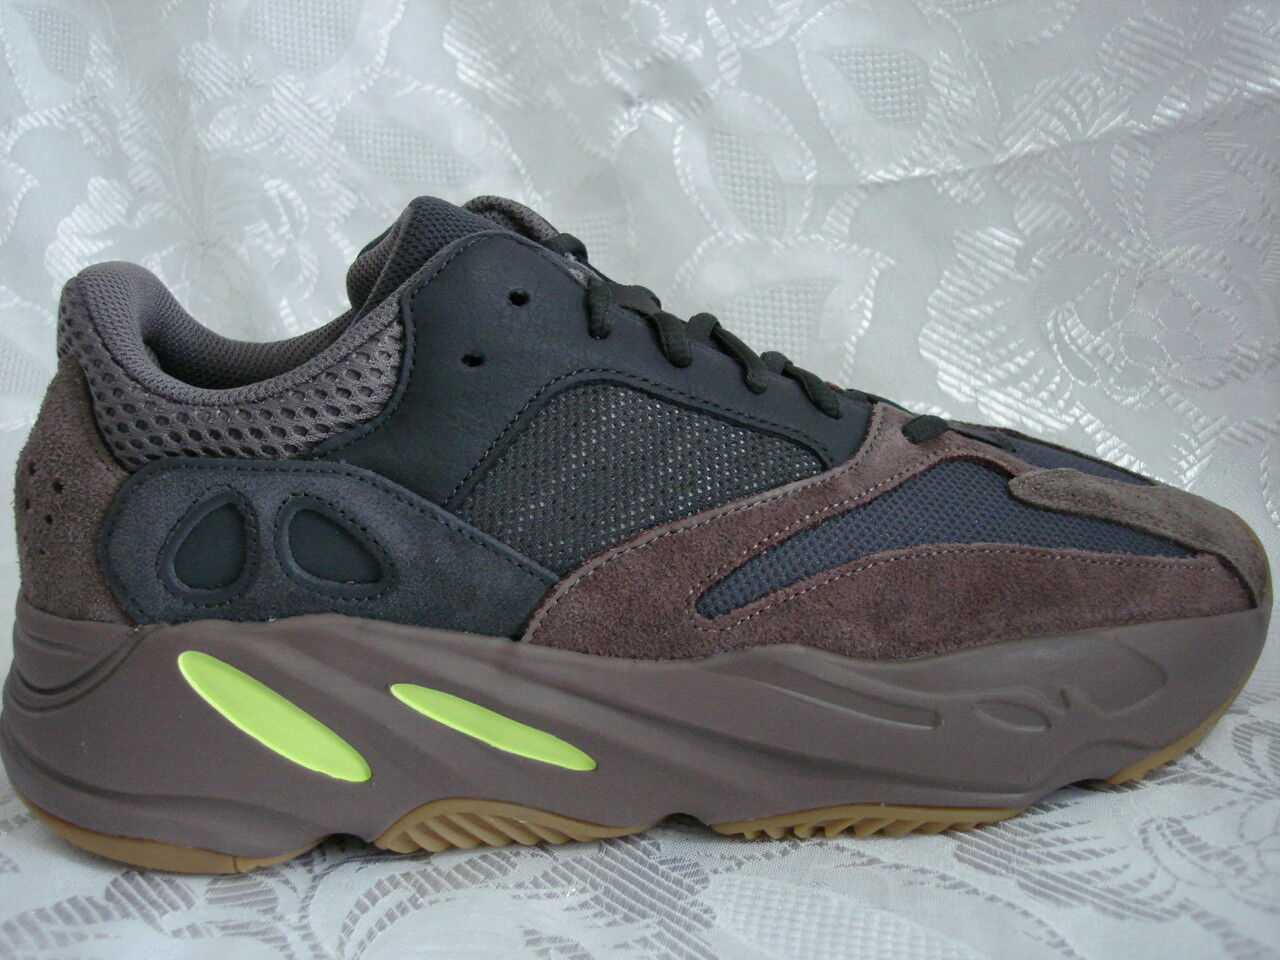 low priced cc3f3 caa25 ADIDAS YEEZY BOOST 700 MAUVE 11.5 EE9614 500 700 WAVE RUNNER ...